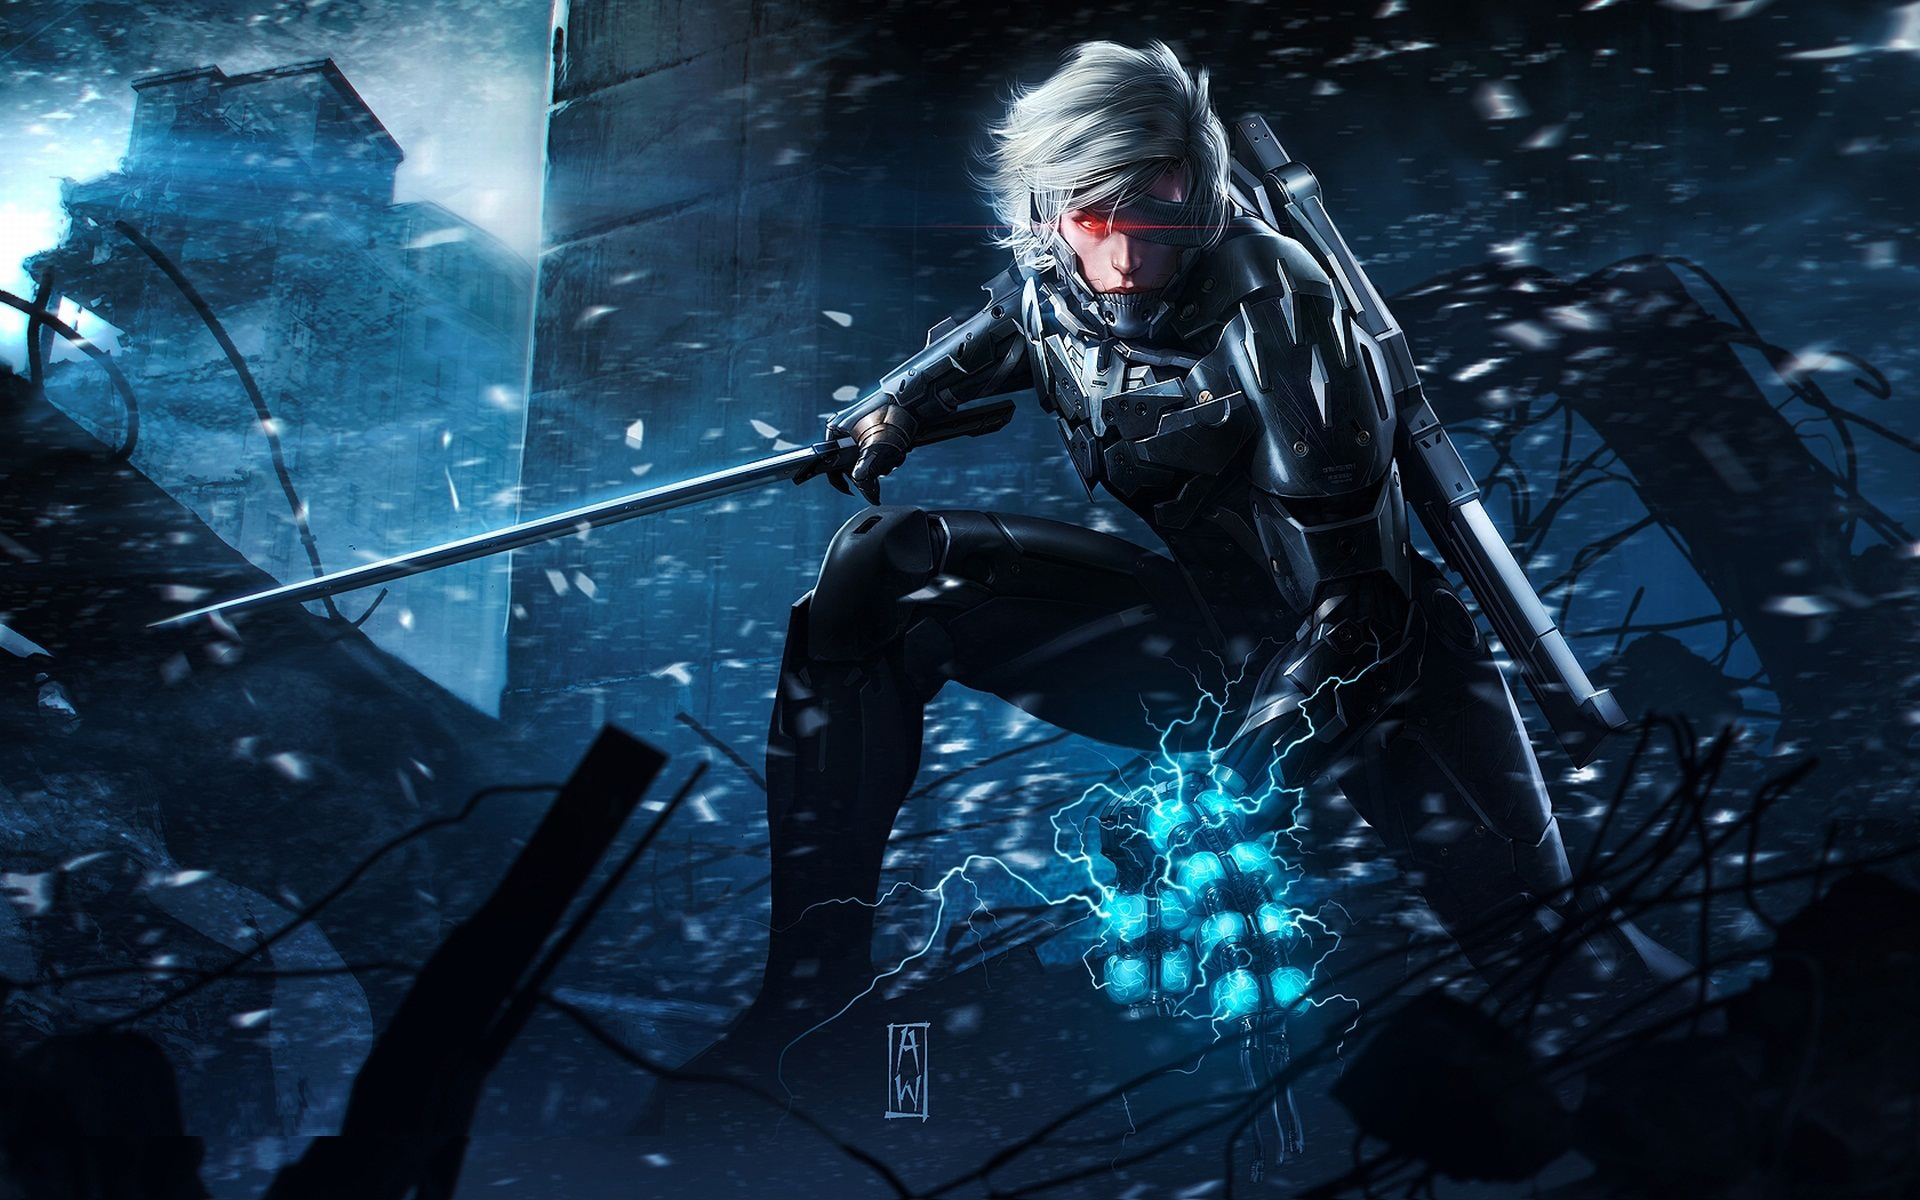 Metal Gear Rising Revengeance Game Wallpapers HD Wallpapers 1920x1200